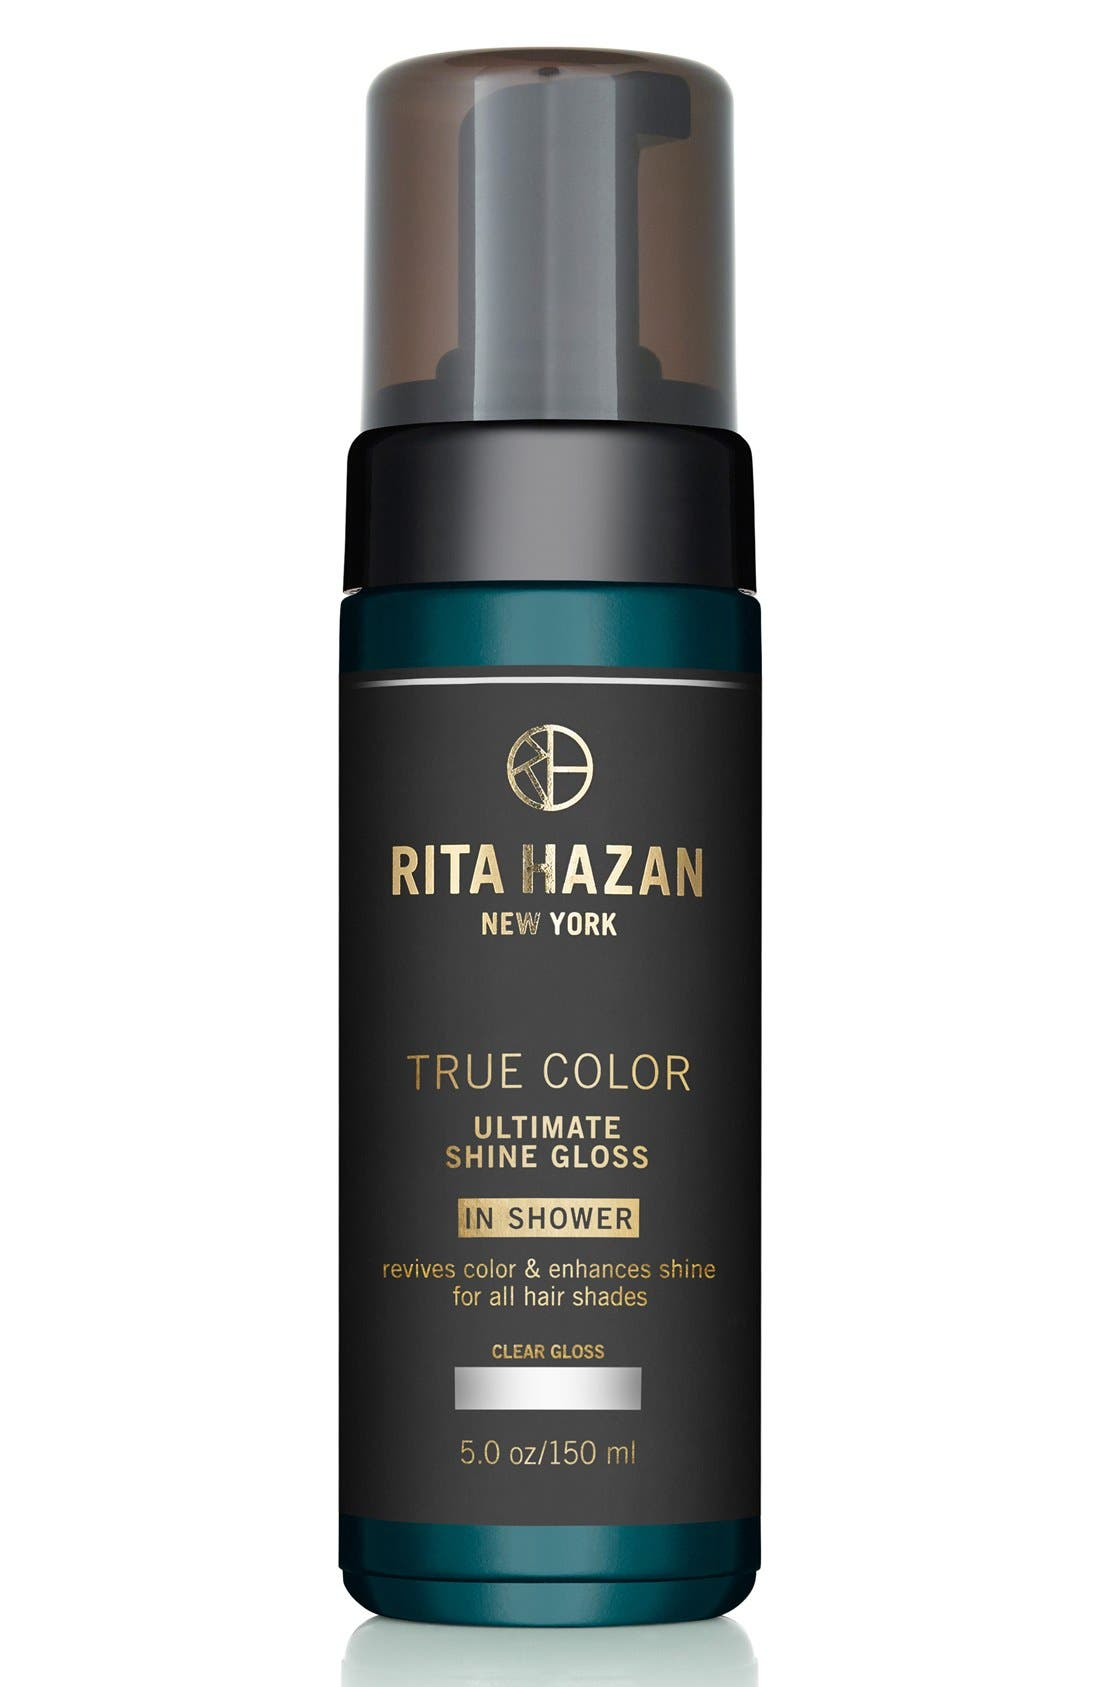 RITA HAZAN NEW YORK 'True Color' Ultimate Shine Gloss